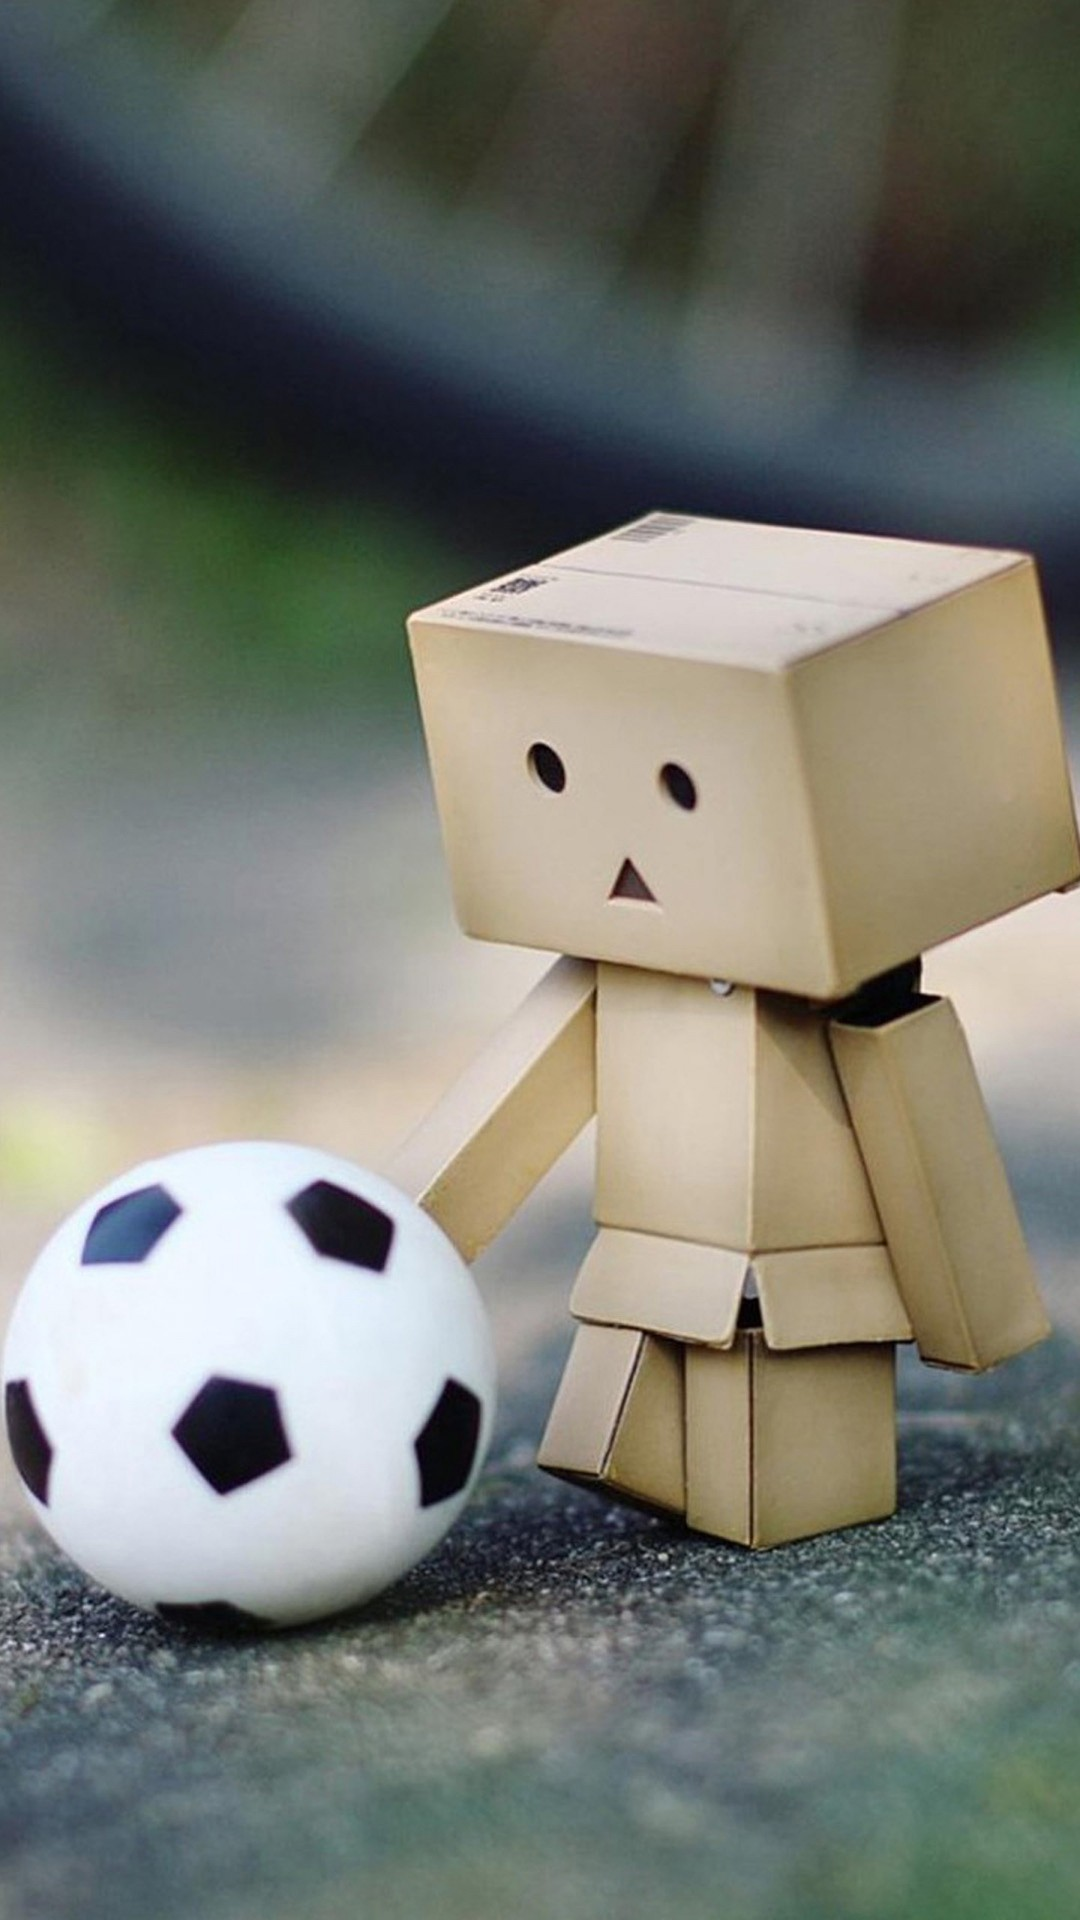 a little box playing soccer wallpaper background